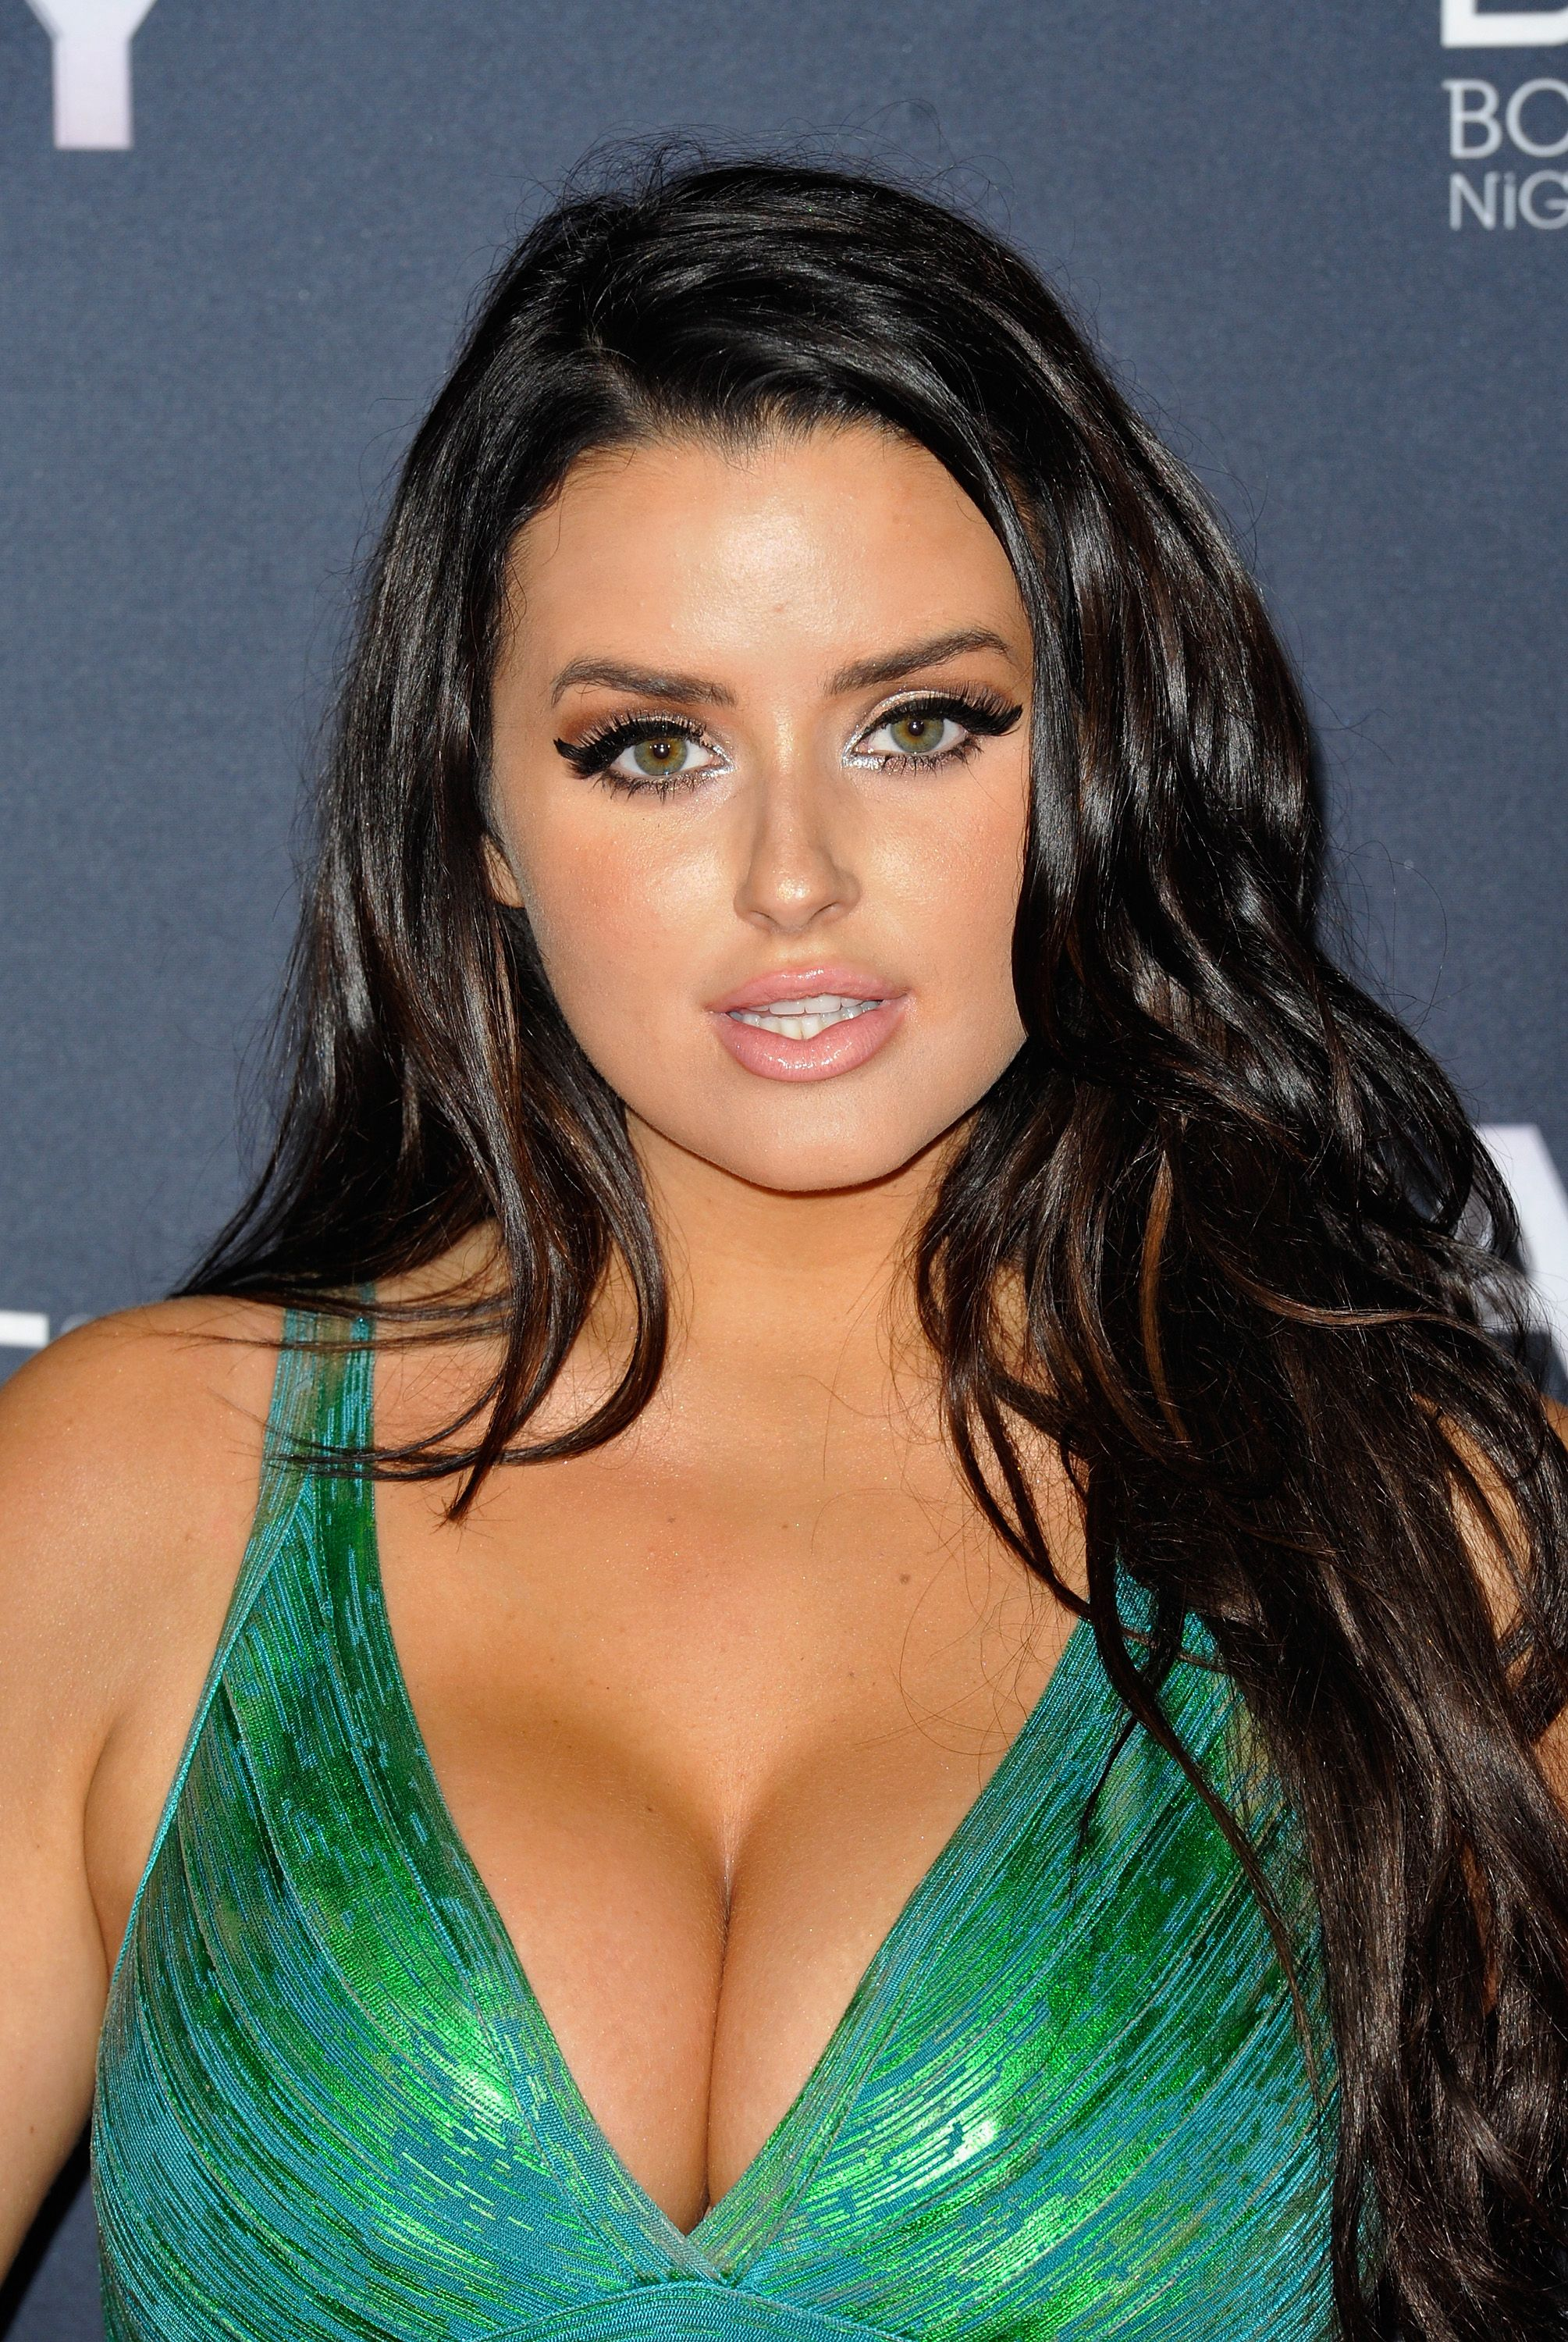 The Women We Love of Instagram: Abigail Ratchford